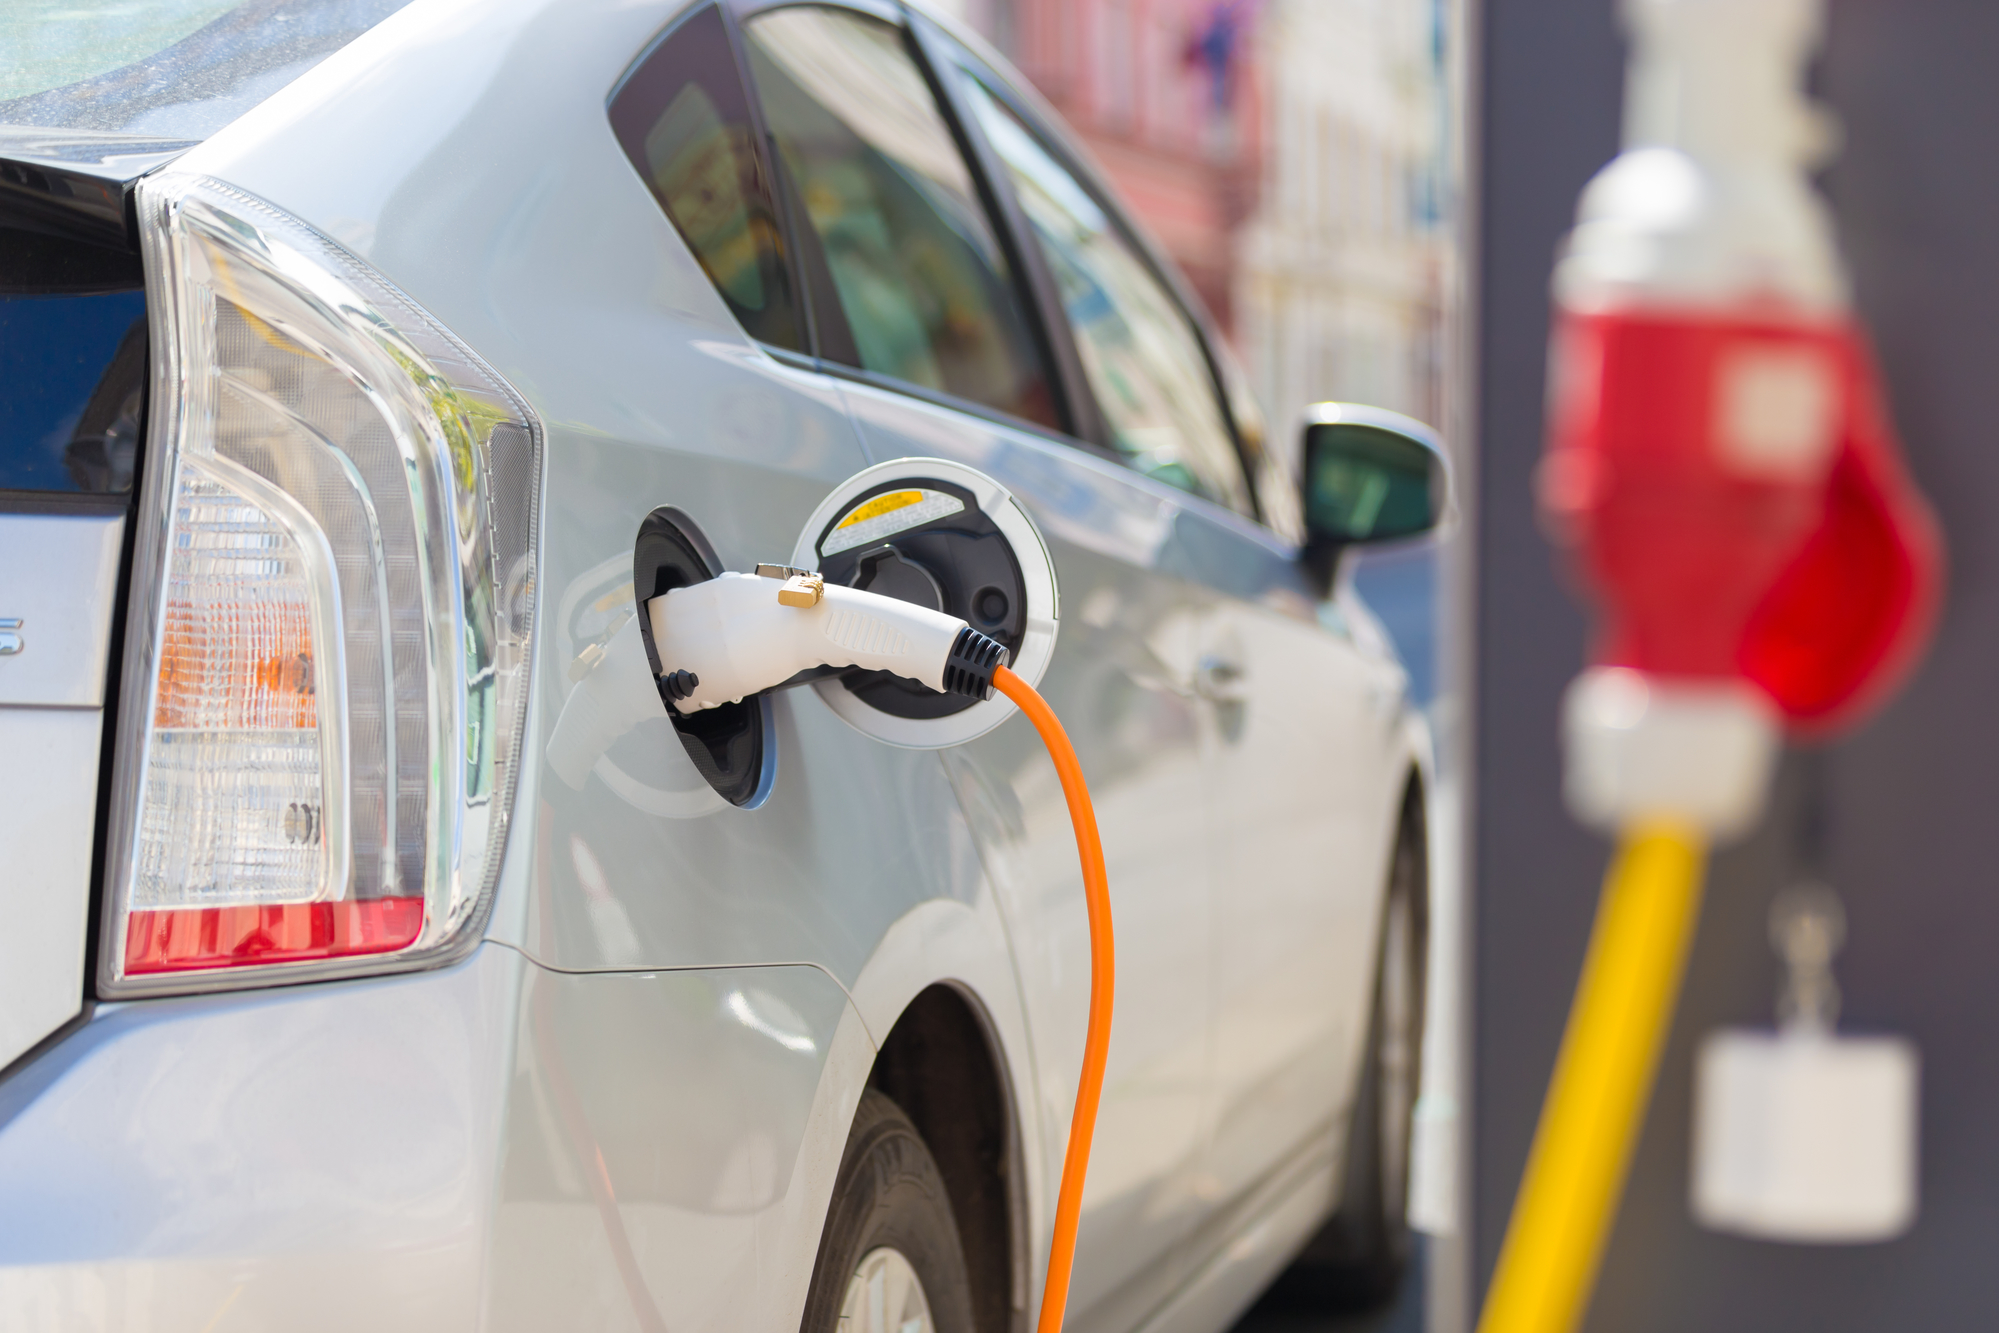 electric car charging stations are one of the top apartment community amenities for 2018